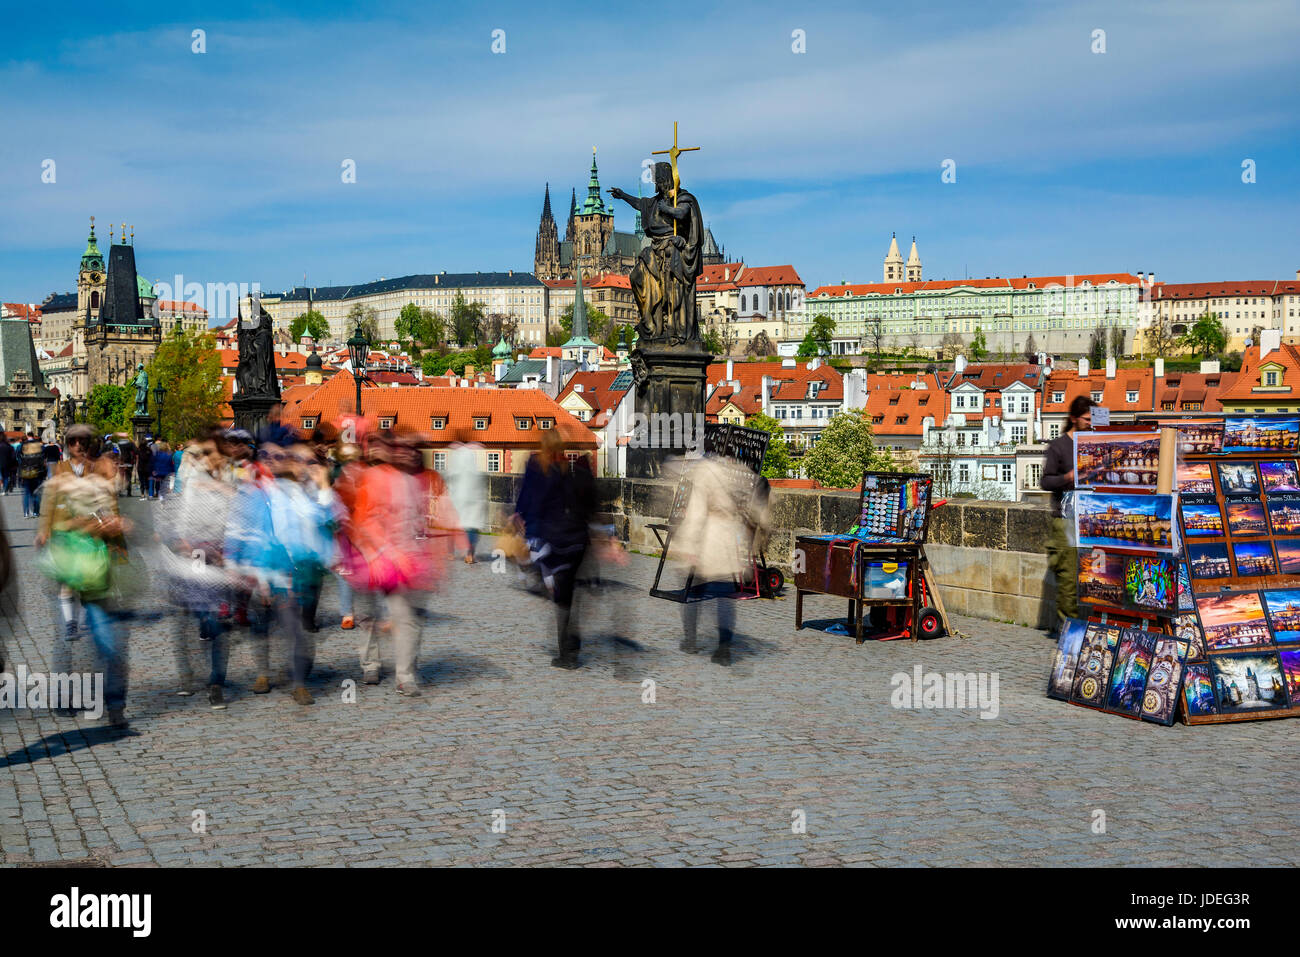 Crowds of tourists and stalls selling souvenirs on Charles Bridge, Prague, Bohemia, Czech Republic - Stock Image